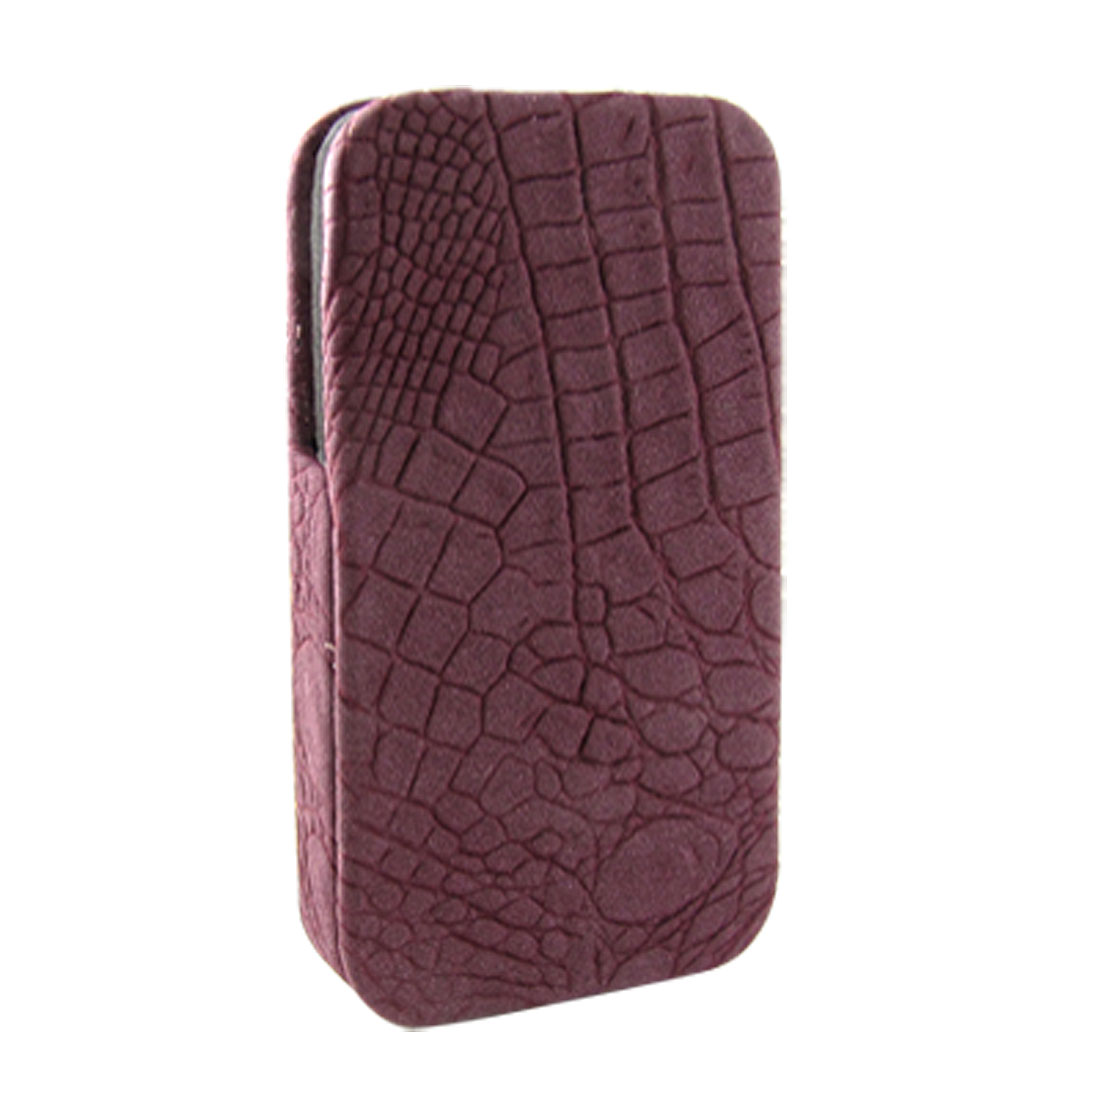 Faux Leather Coated Hard Crocodile Print Pouch Case for iPhone 4 4G